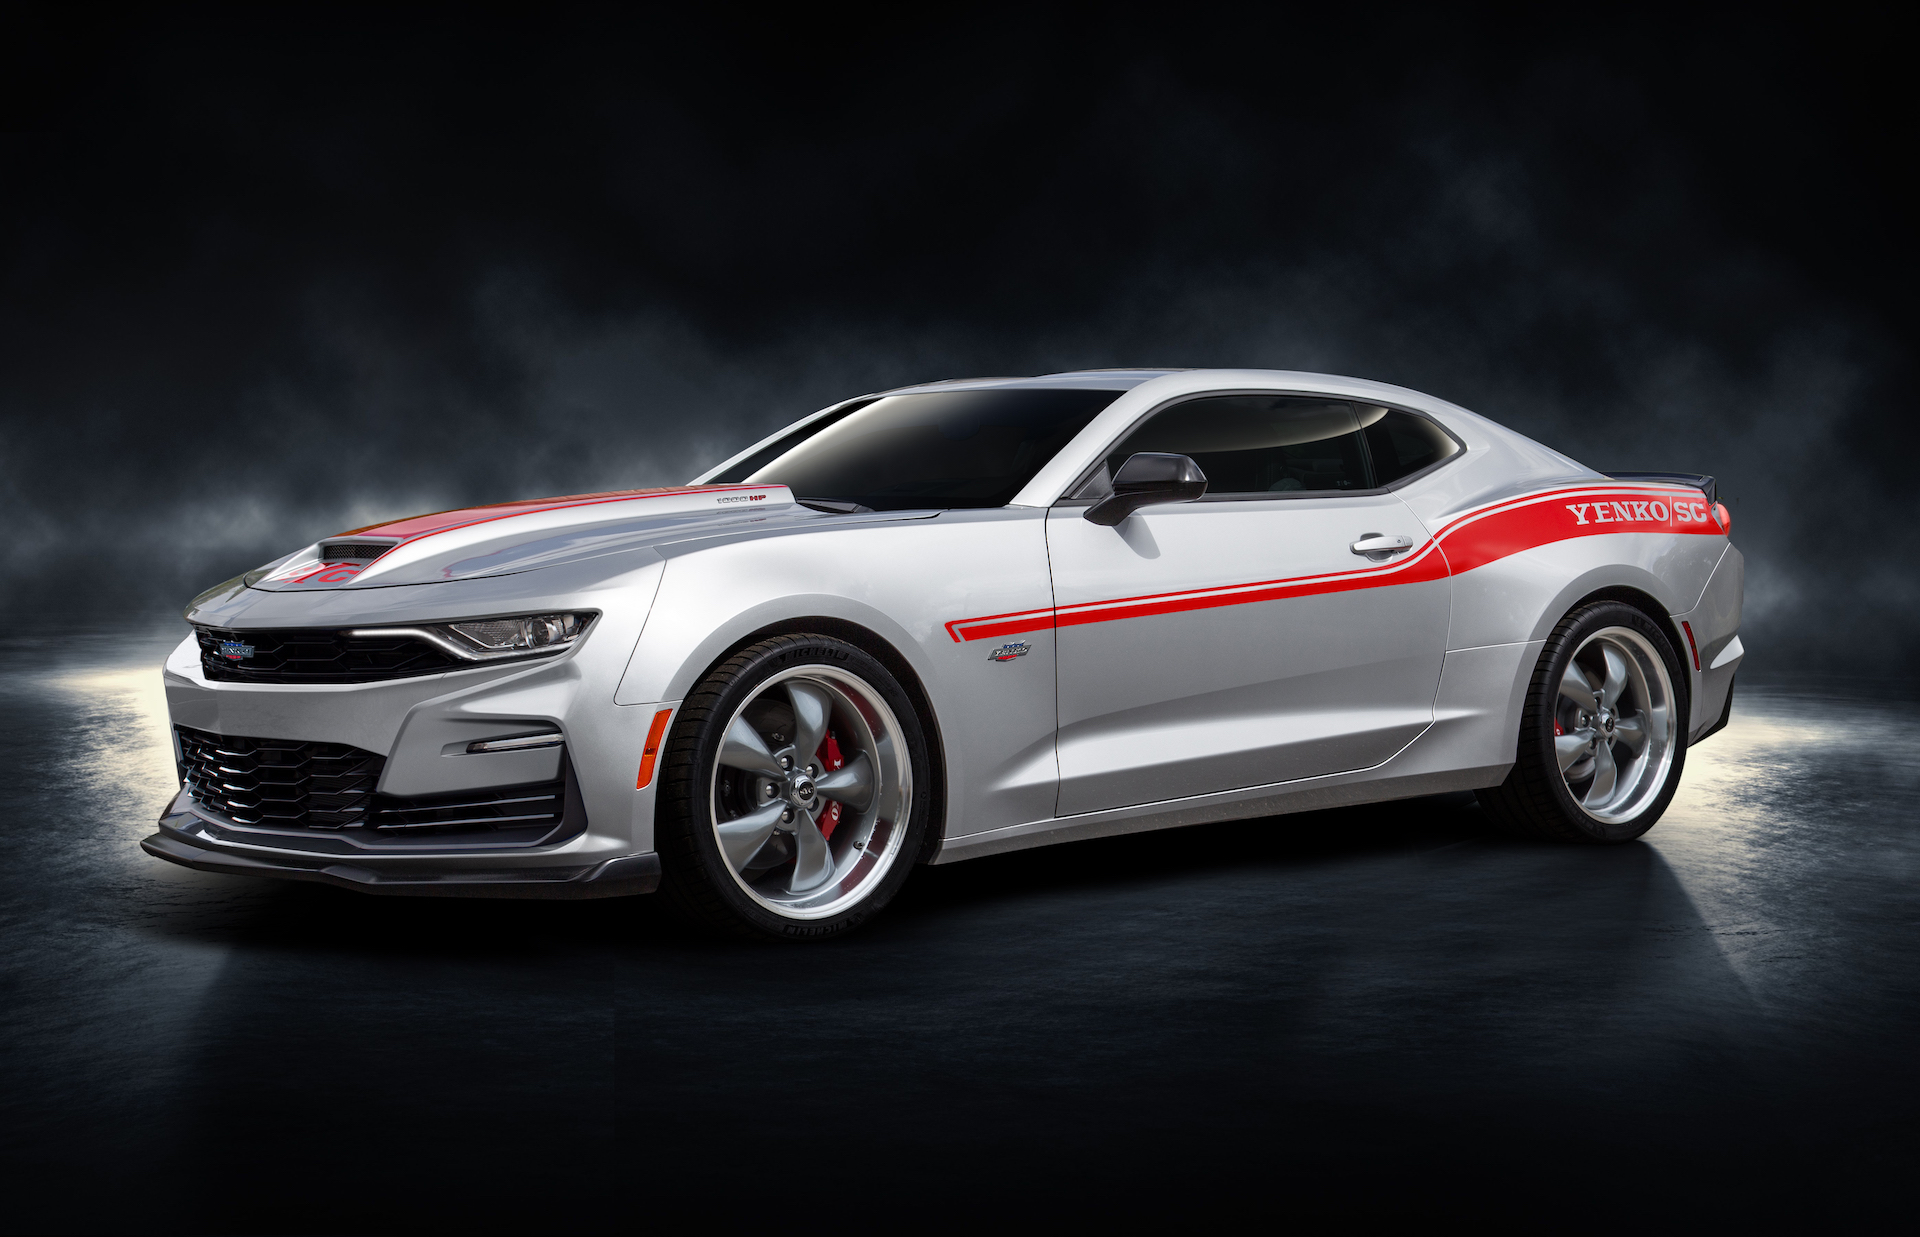 2020 Yenko/SC Camaro arrives with 1,000 hp and boss looks